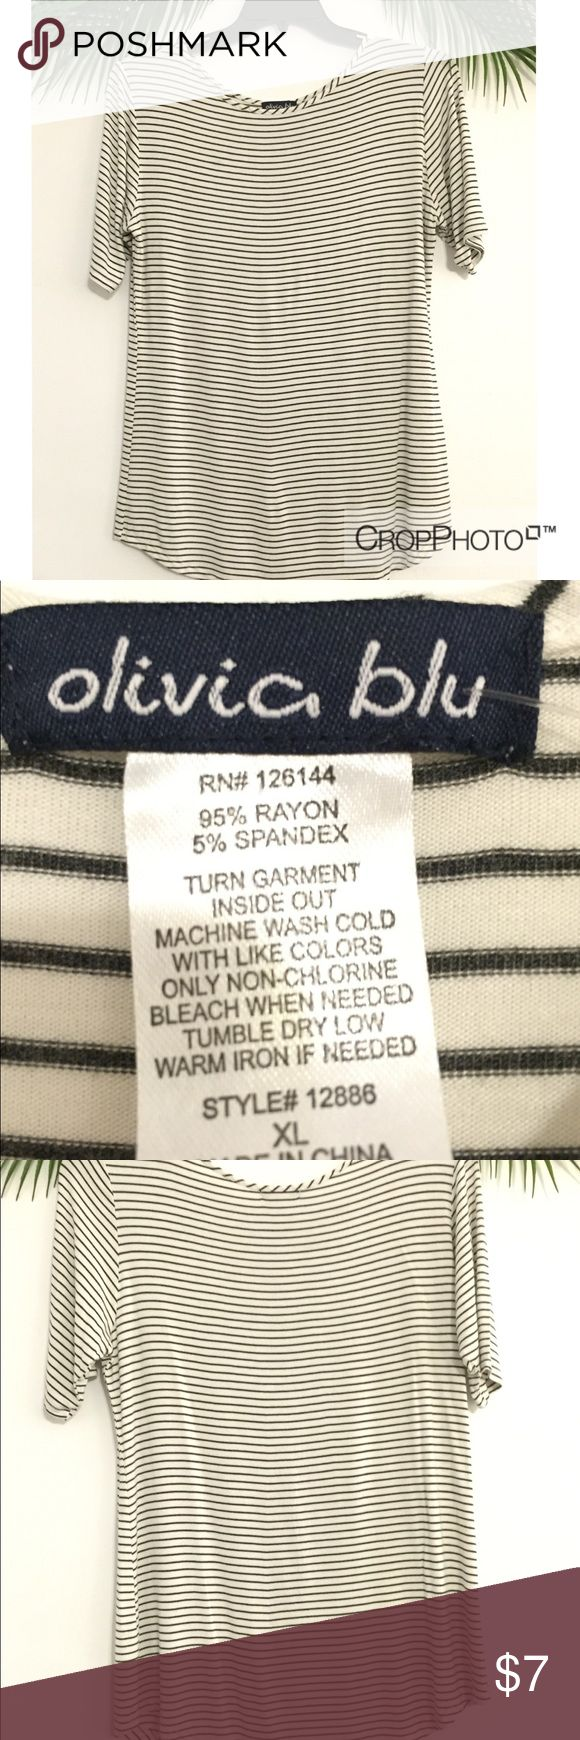 🔴4/!20 black white stripe tshirt Olivia Blu Classic and versatile black and white stripe tshirt by Olivia Blu, size XL. Comfy, stretchy, and drapey - gently worn maybe once. No flaws. Great with trousers and a blazer for work or jeans and booties for the weekend! Qualifies for 🔴4/$20 summer sale bundle. Ask me any questions! Olivia Blu Tops Tees - Short Sleeve